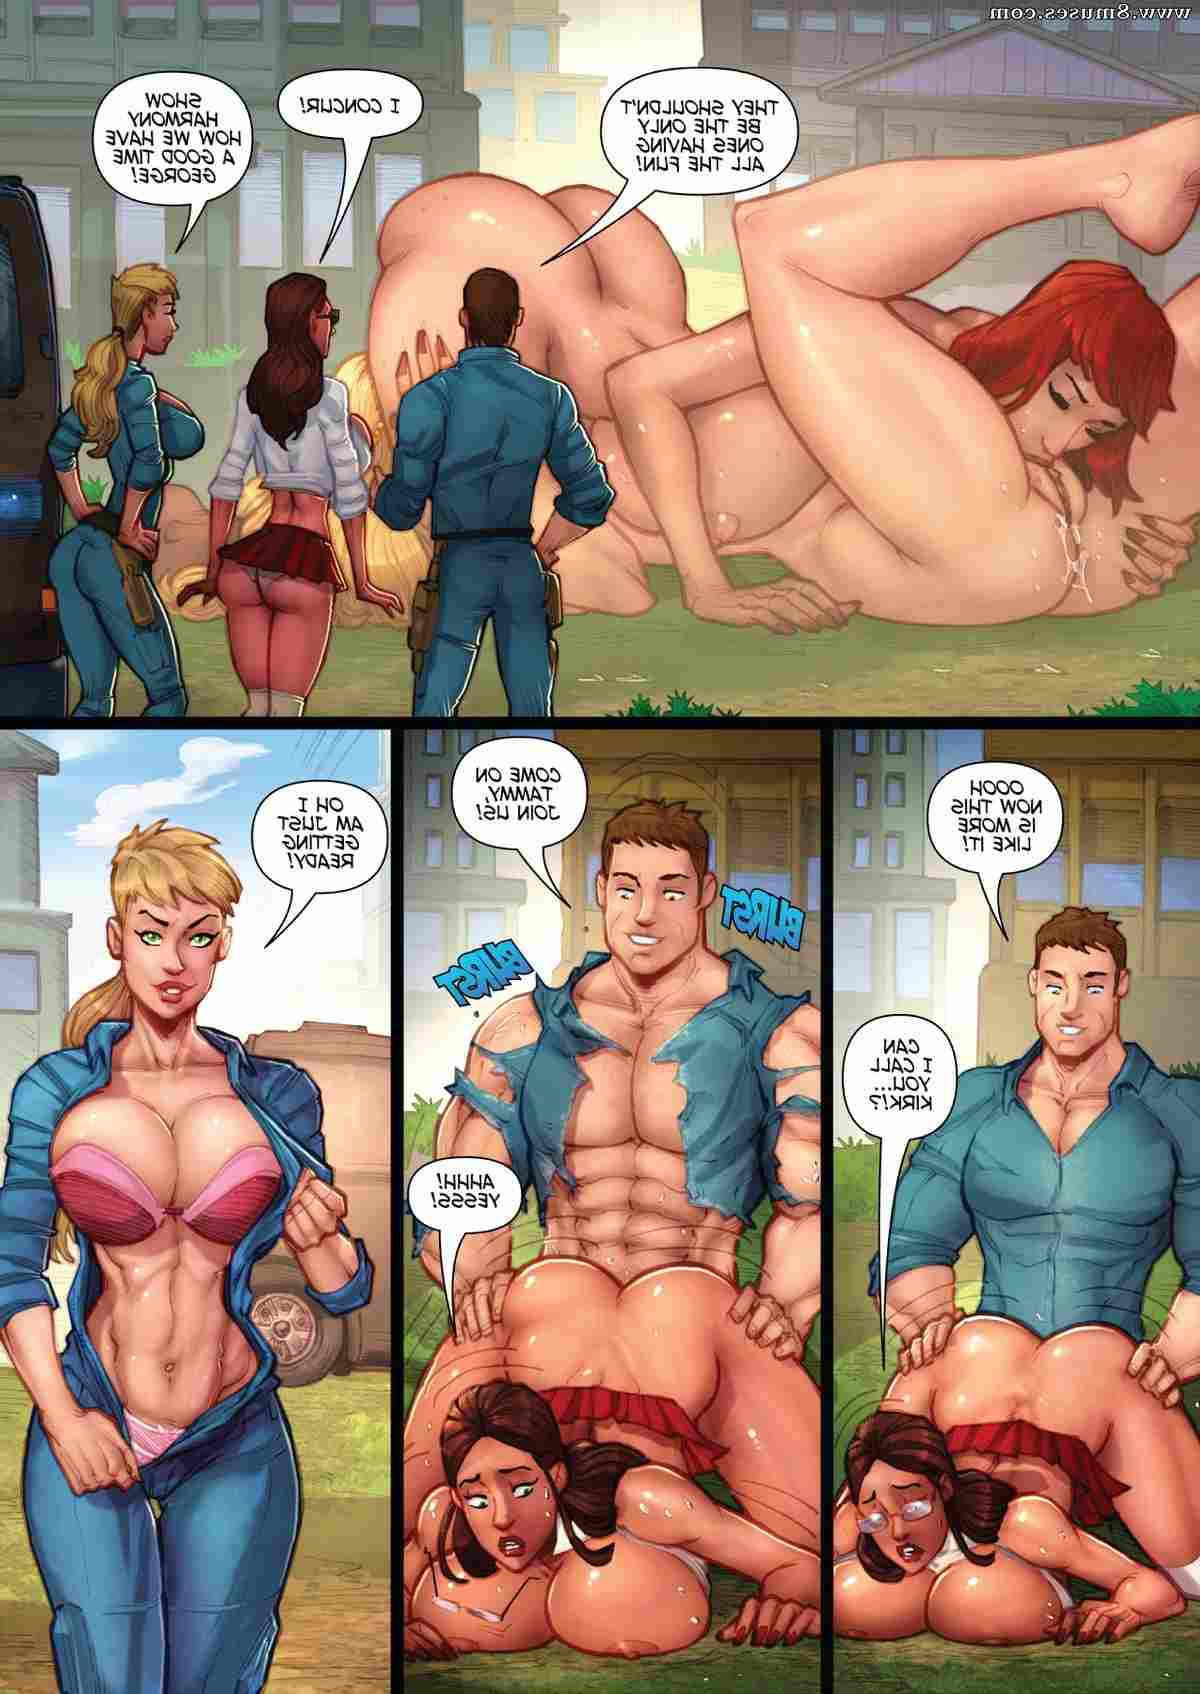 ZZZ-Comics/Everything-Grown Everything_Grown__8muses_-_Sex_and_Porn_Comics_8.jpg